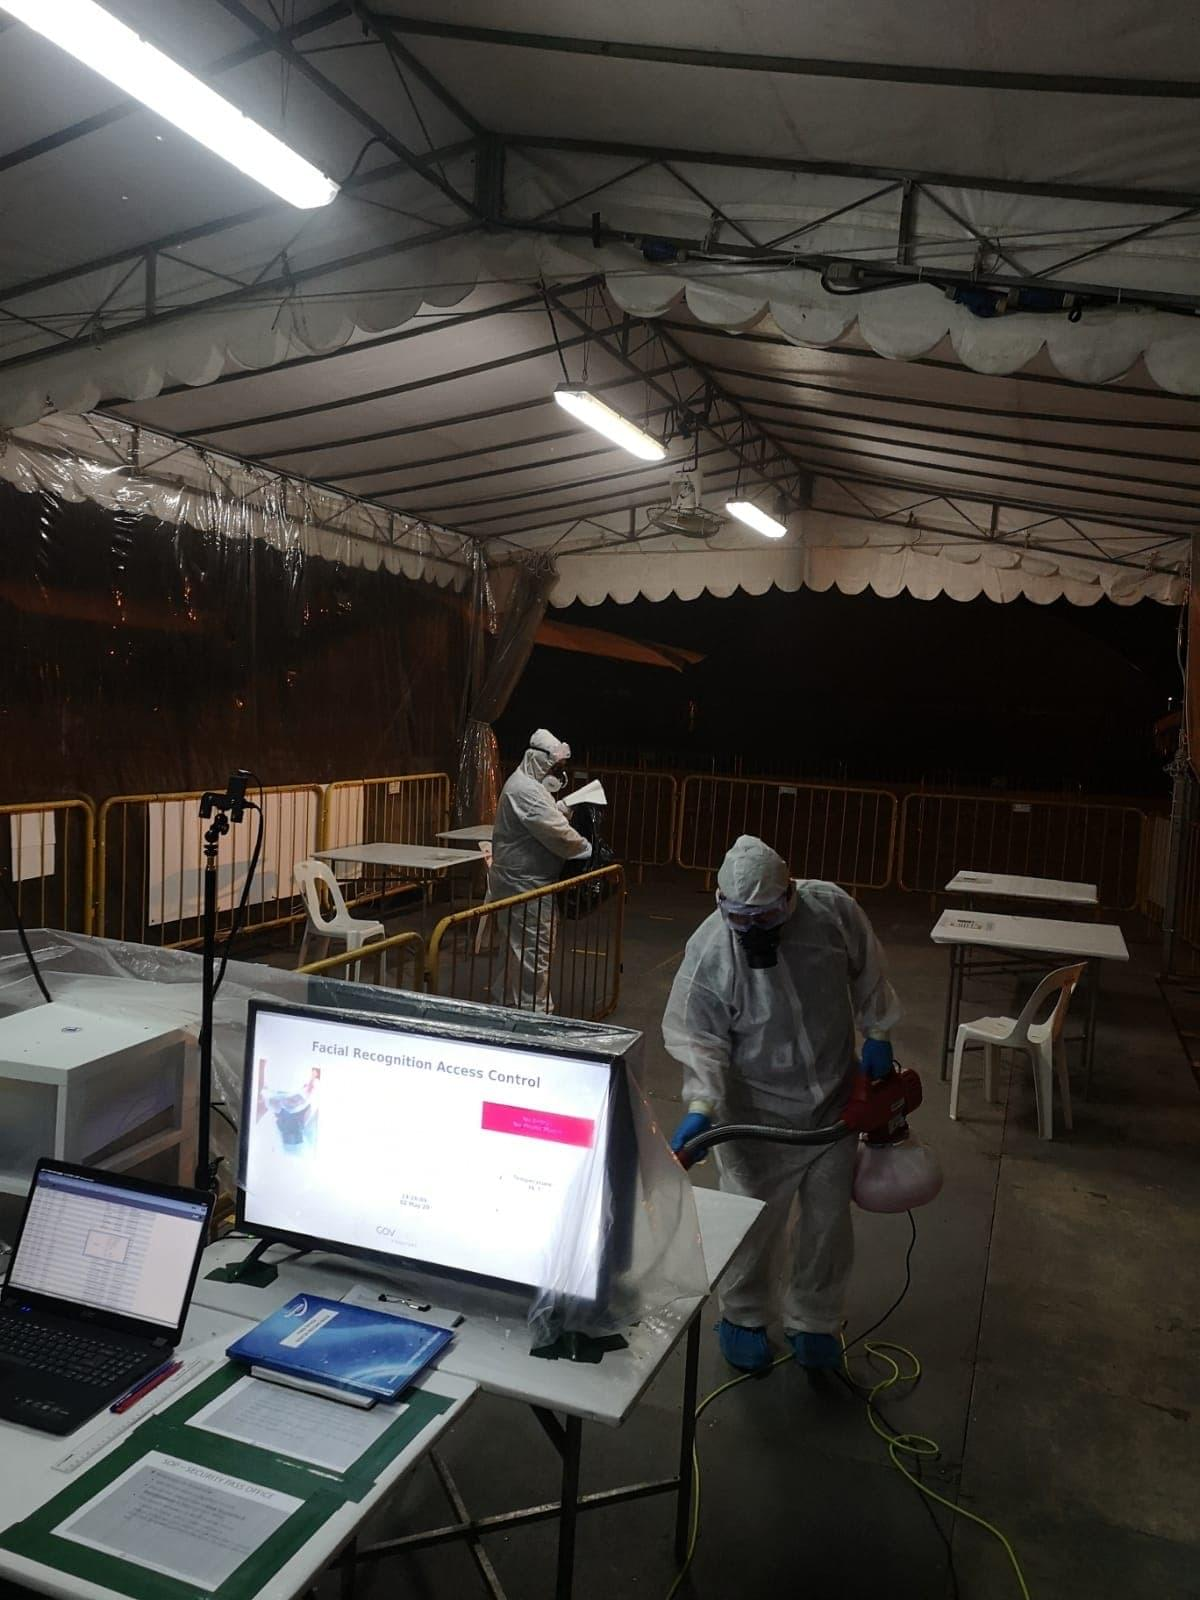 Coronavirus disinfection in progress at a foreign worker dormitory in Singapore